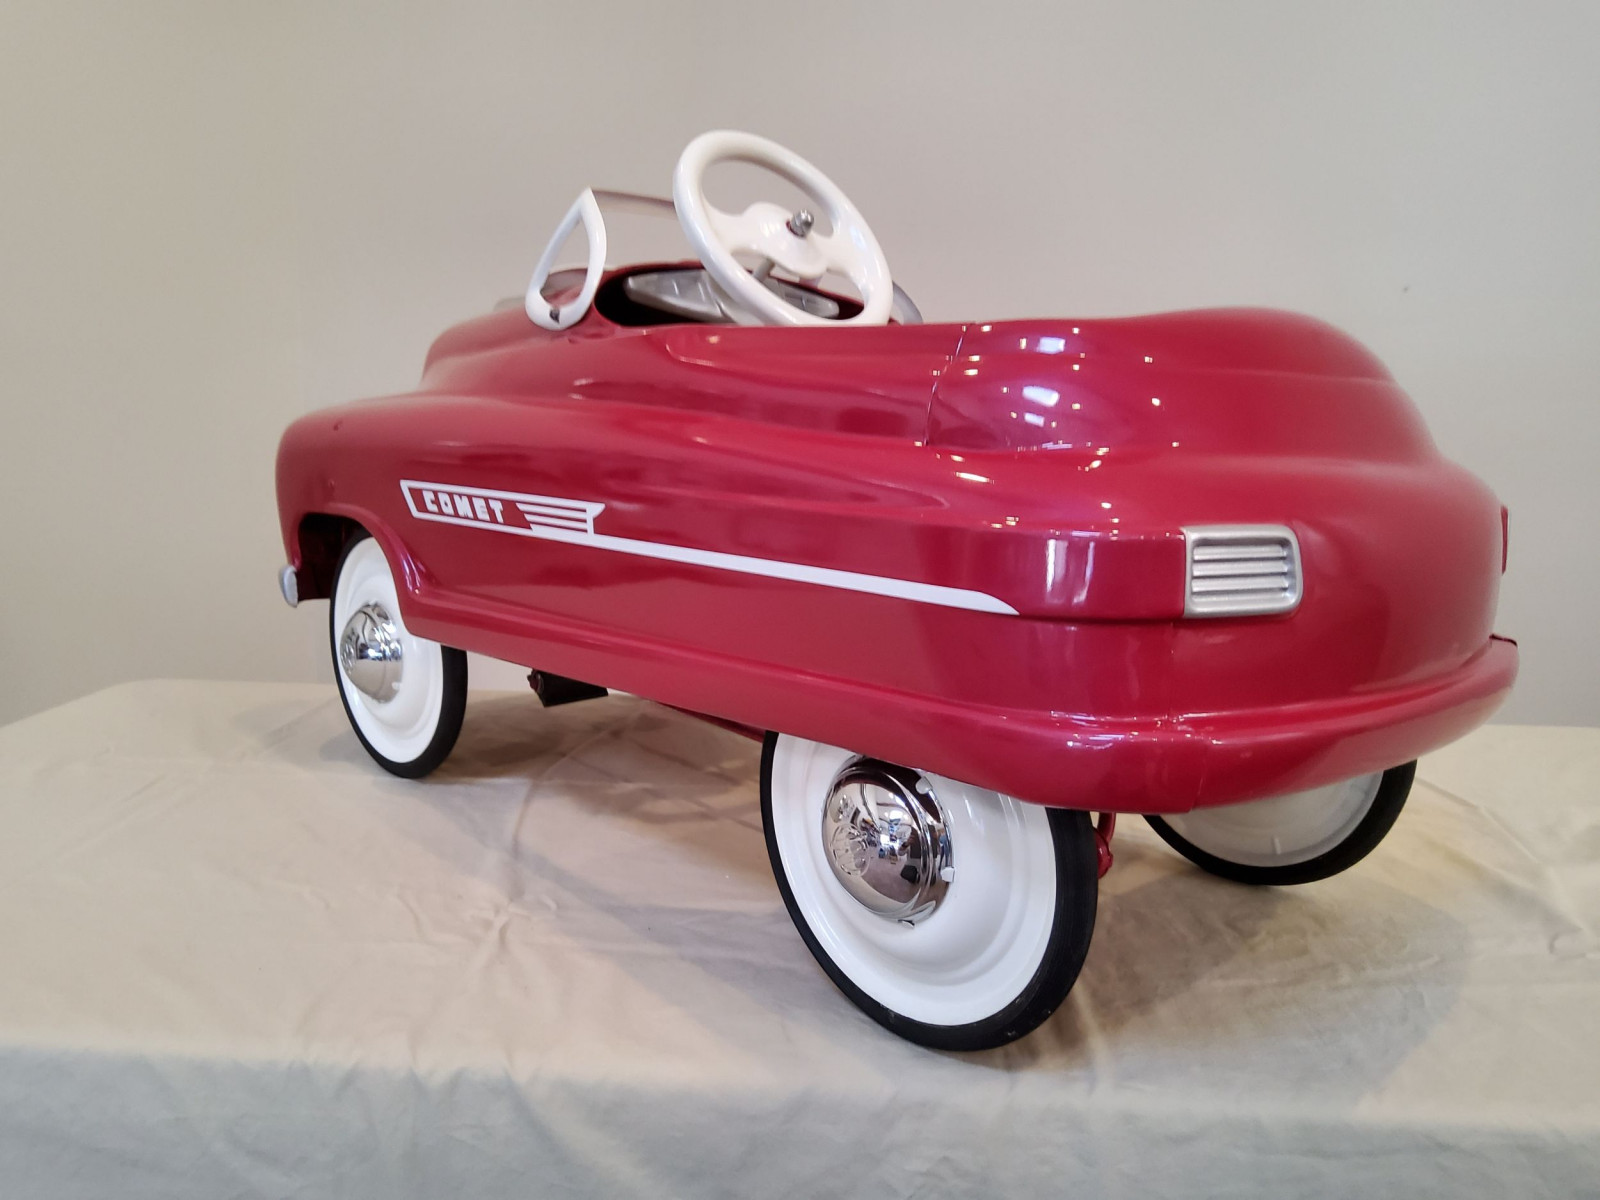 1949-54 Murray Comet Pedal Car - Image 4